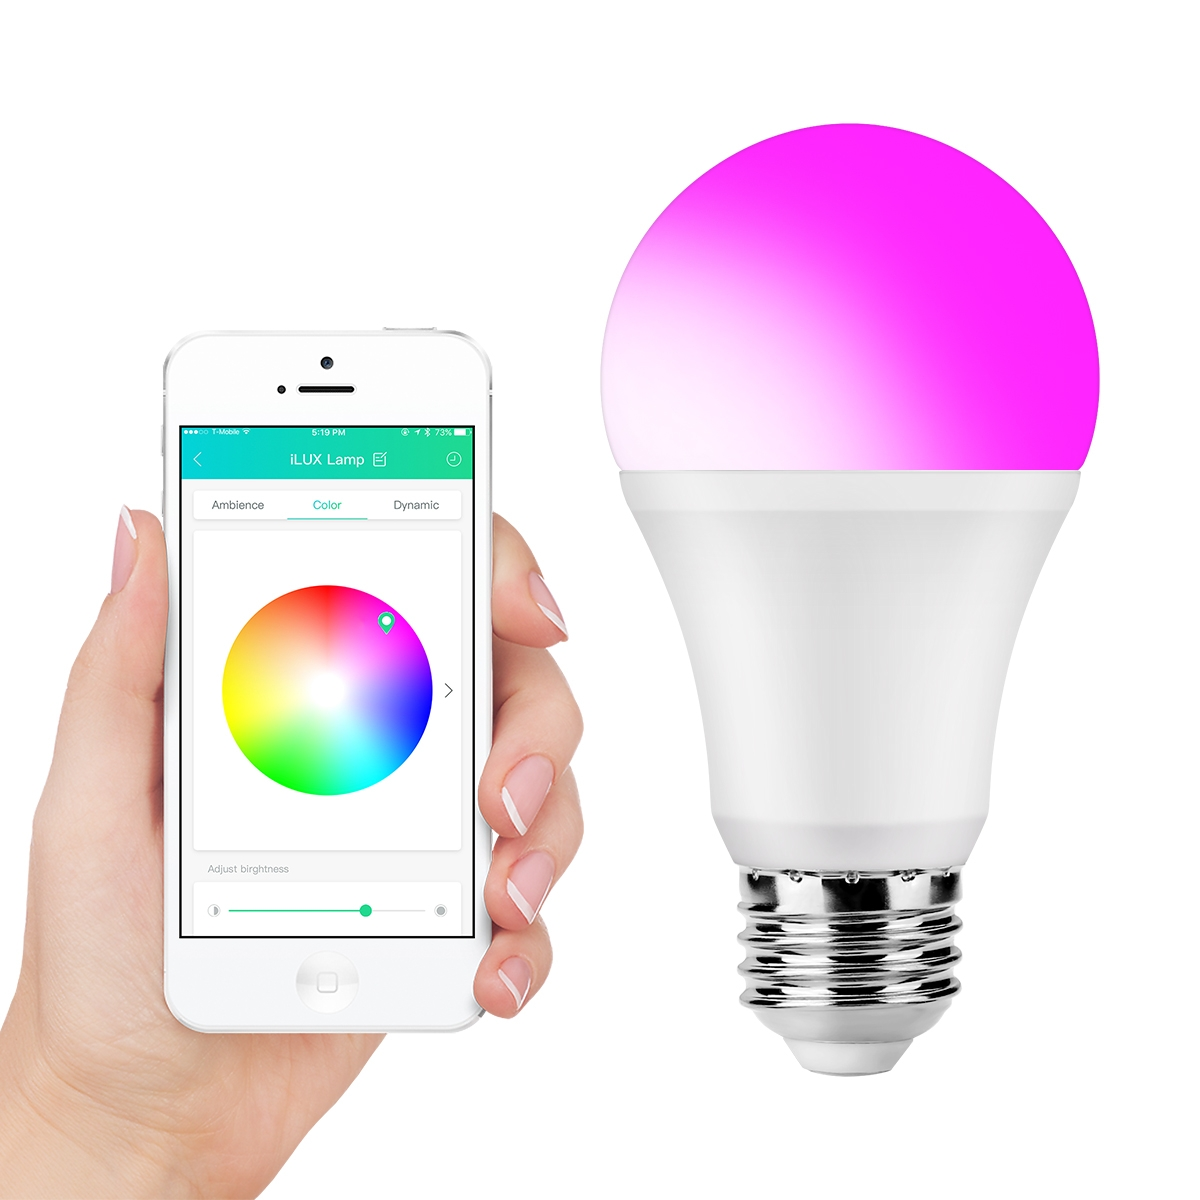 Lighting EVER 9W 800lm A19 E26 iLUX LED Smart Bulb, RGBW Dimmable Smart-phone Bluetooth Control LED Light Bulb, 60W Incandescent Bulb Equivalent